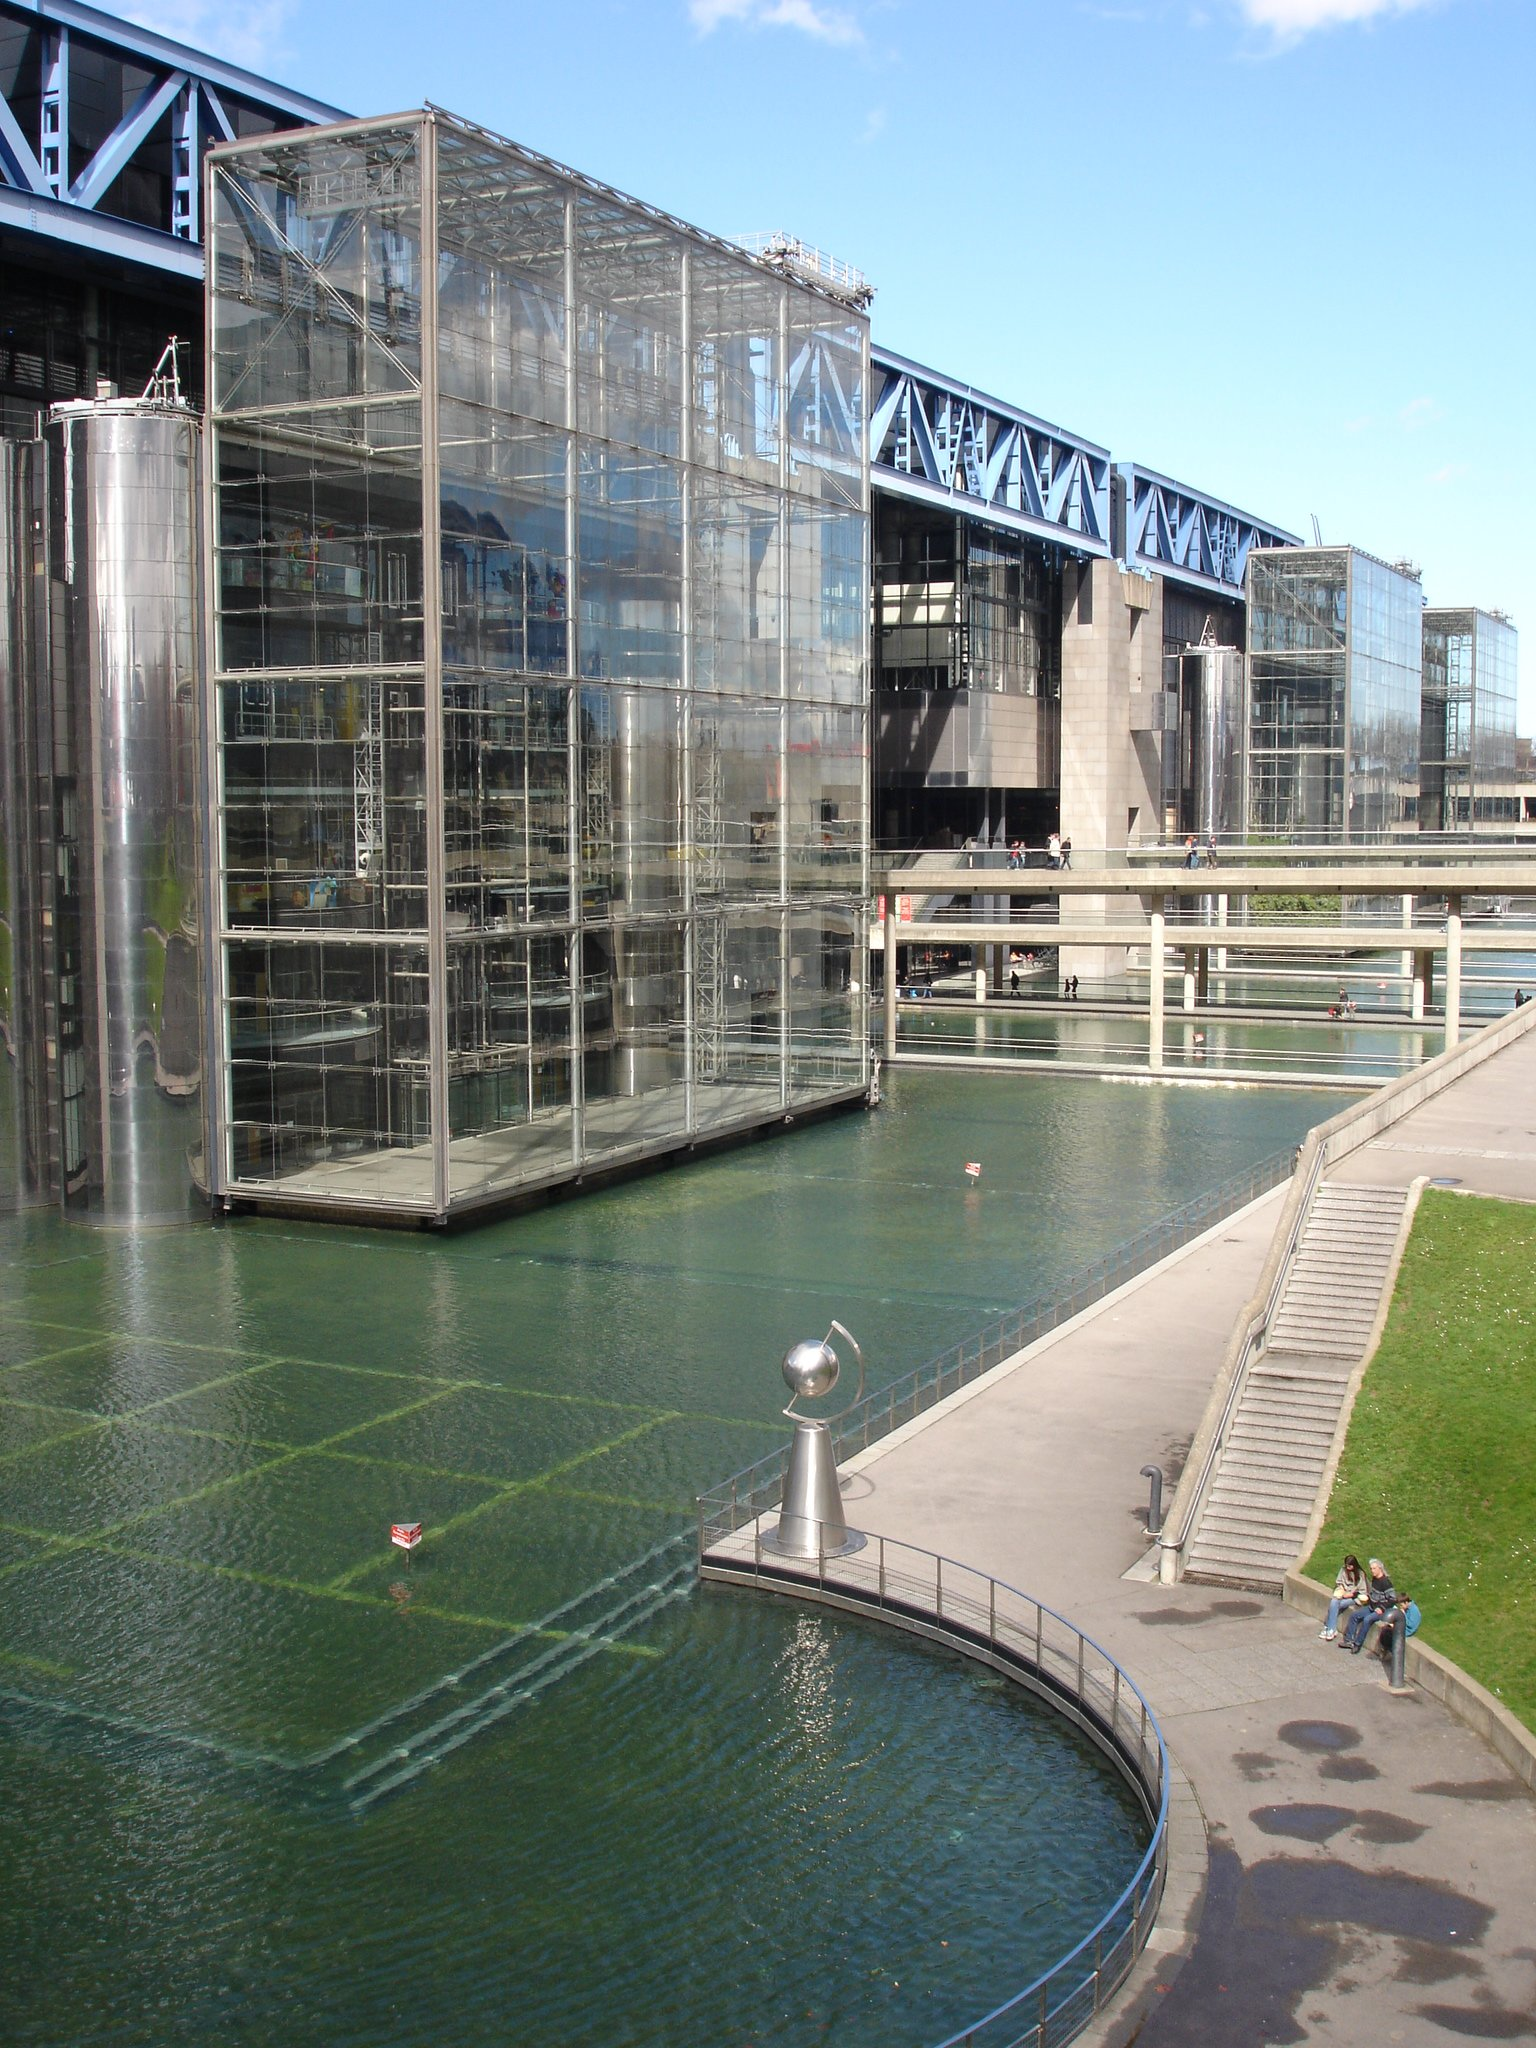 http://upload.wikimedia.org/wikipedia/commons/a/a0/Paris_-_parc_de_la_Villette_-_Cit%C3%A9_des_sciences_et_de_l%27industrie2.JPG